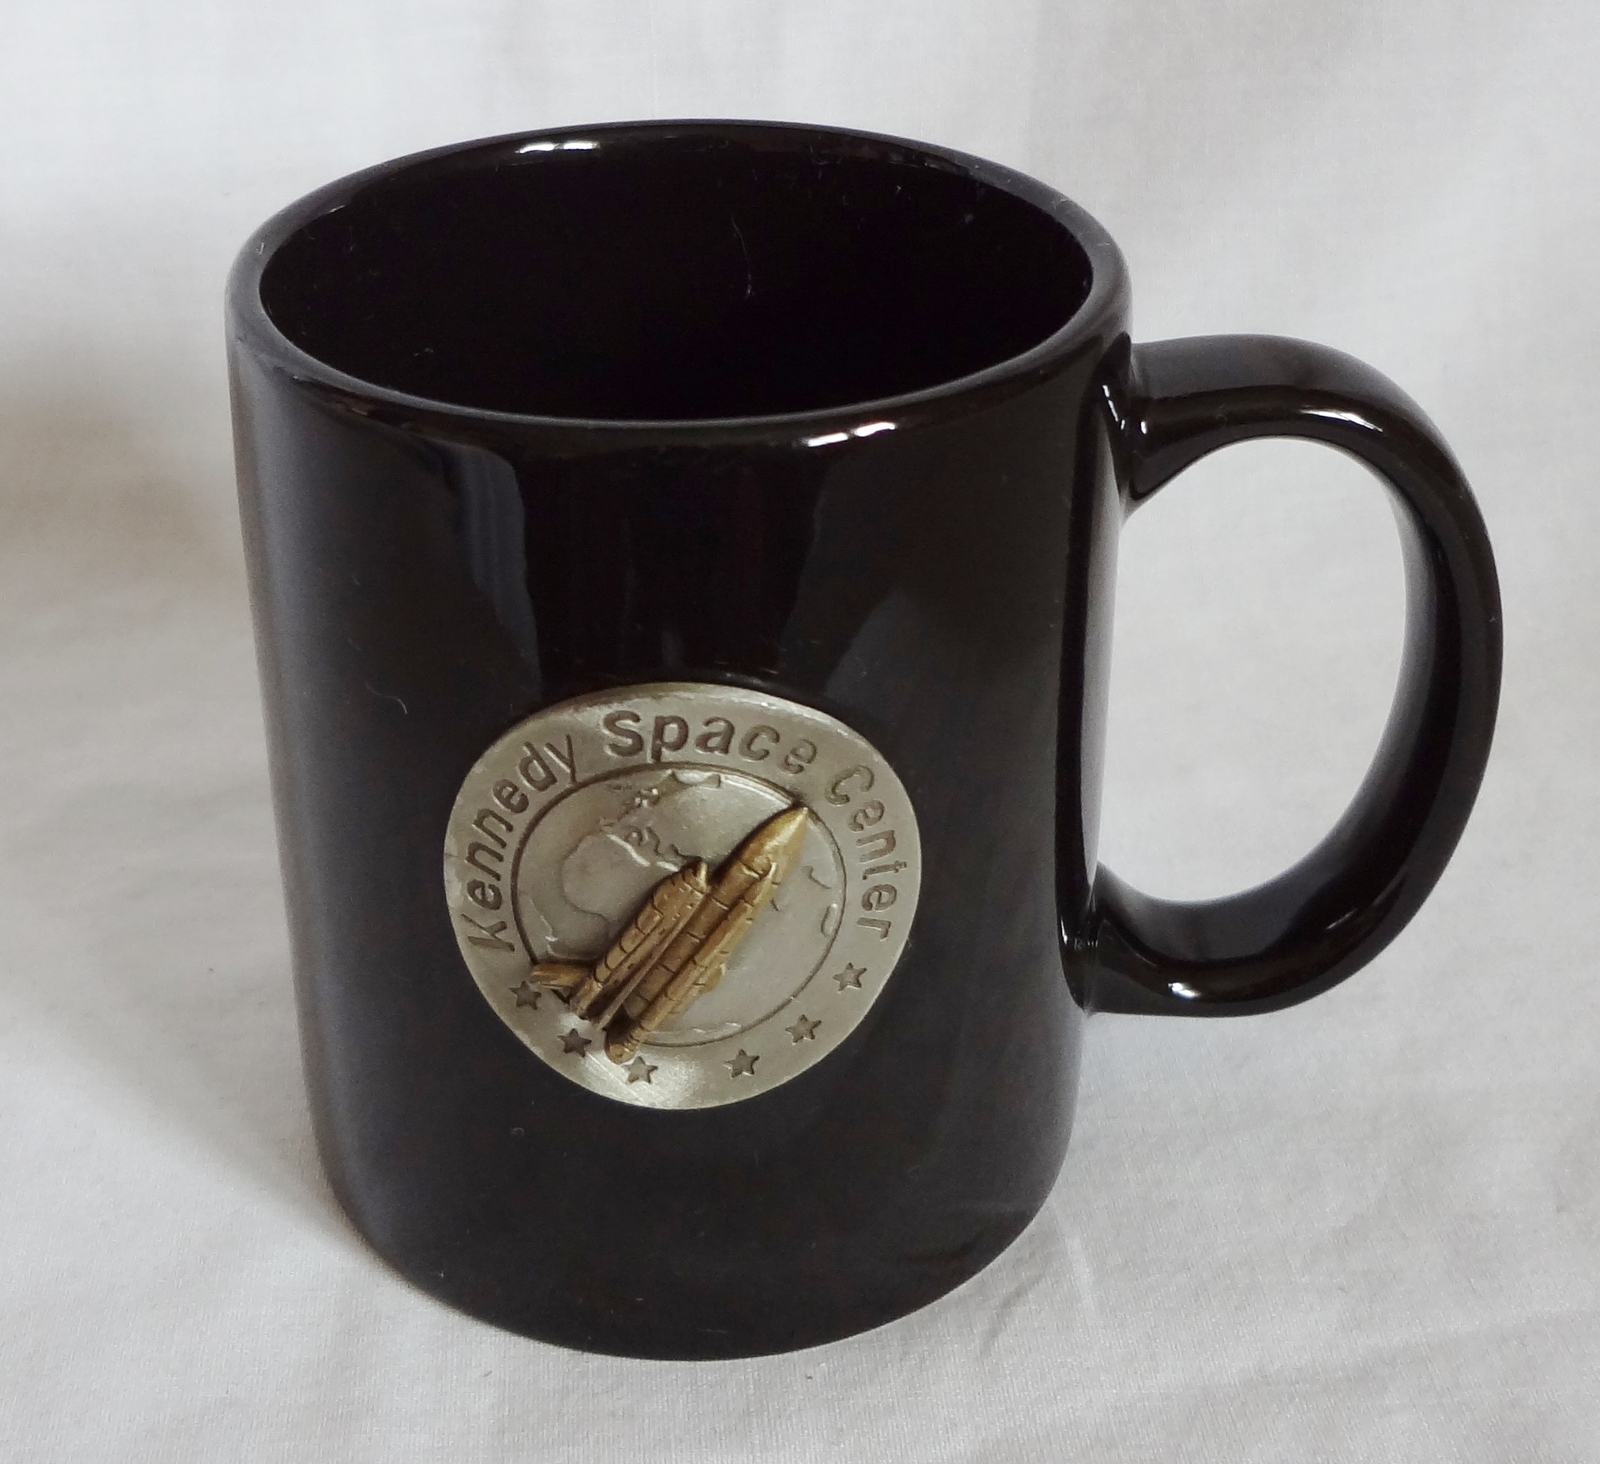 kennedy space center 10 oz coffee cup mug metal emblem. Black Bedroom Furniture Sets. Home Design Ideas